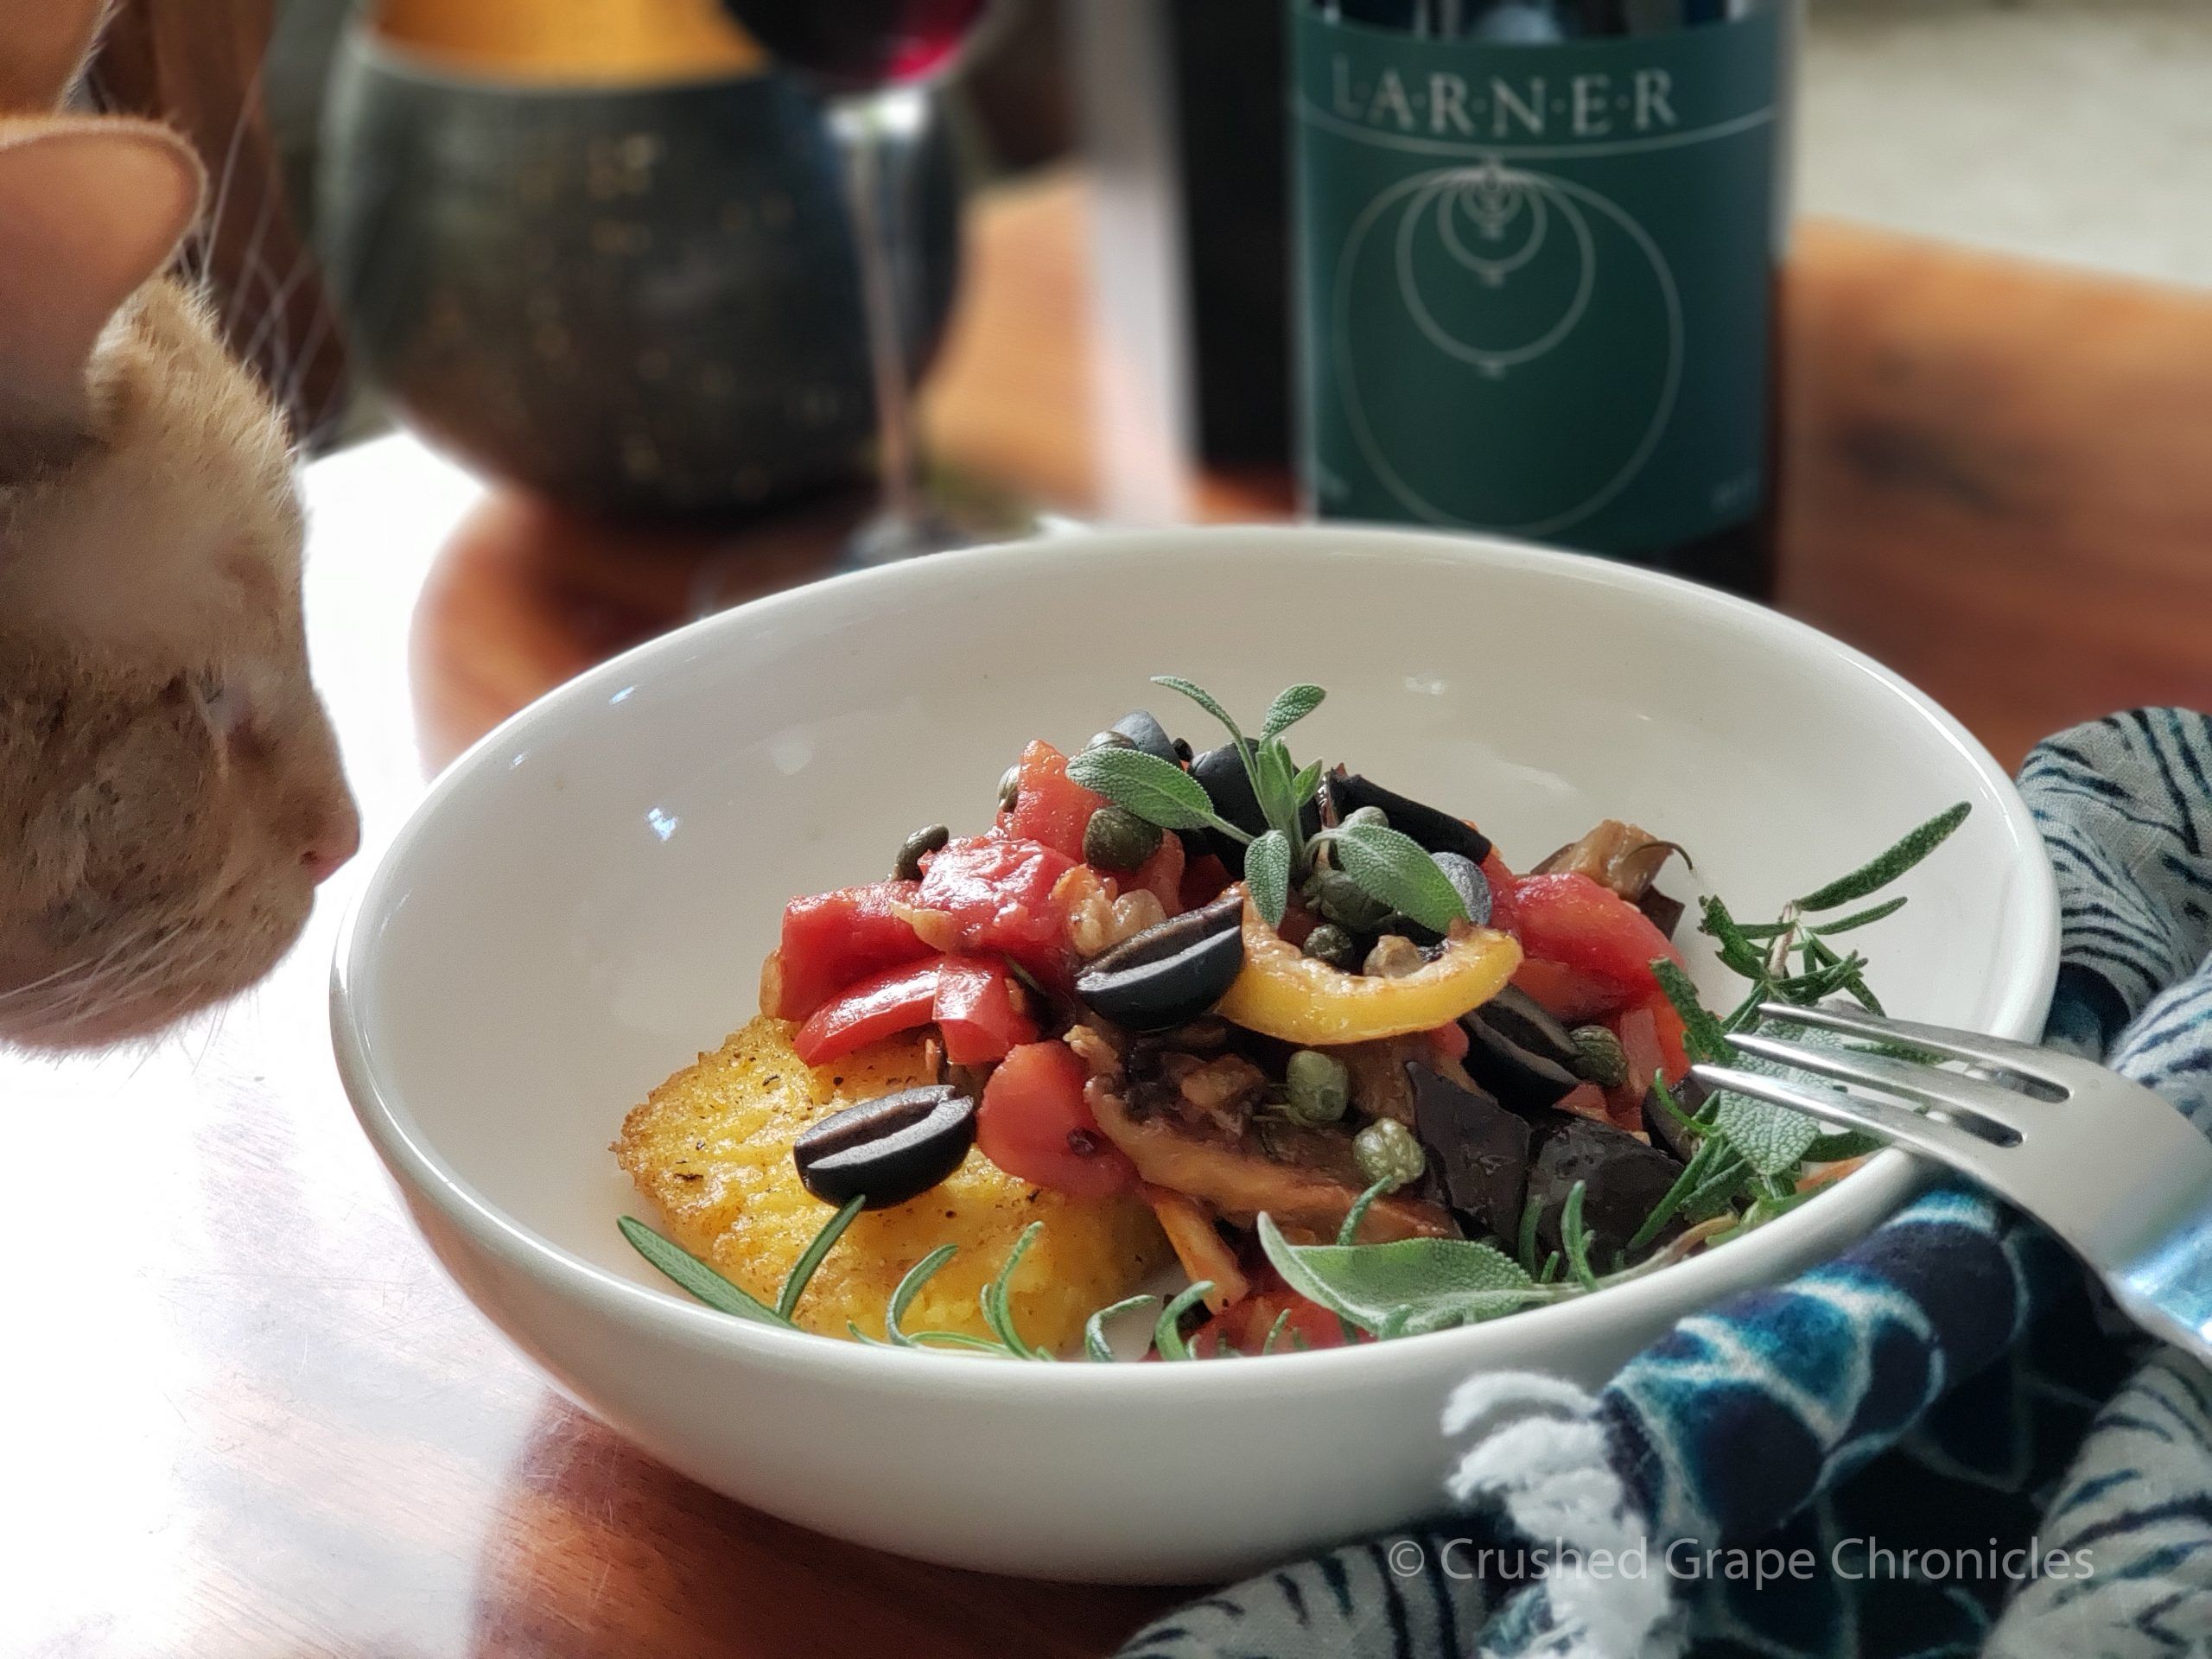 Polenta with Roasted vegetables Larner 2017 Elemental and Loki